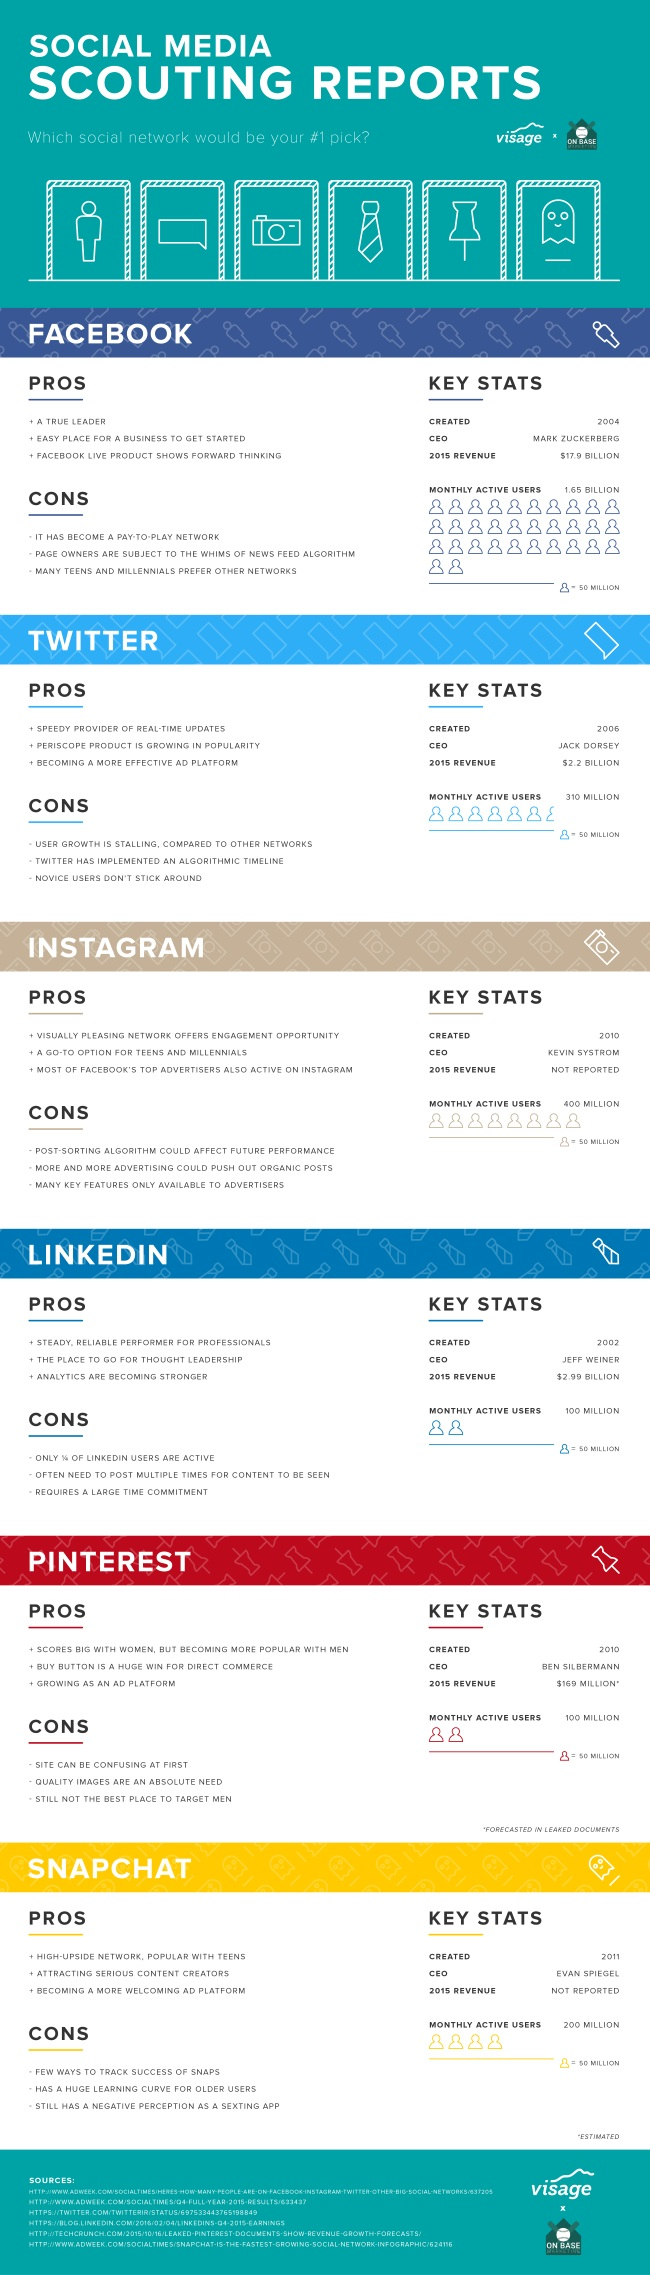 visage: infografica pro contro social network in inglese